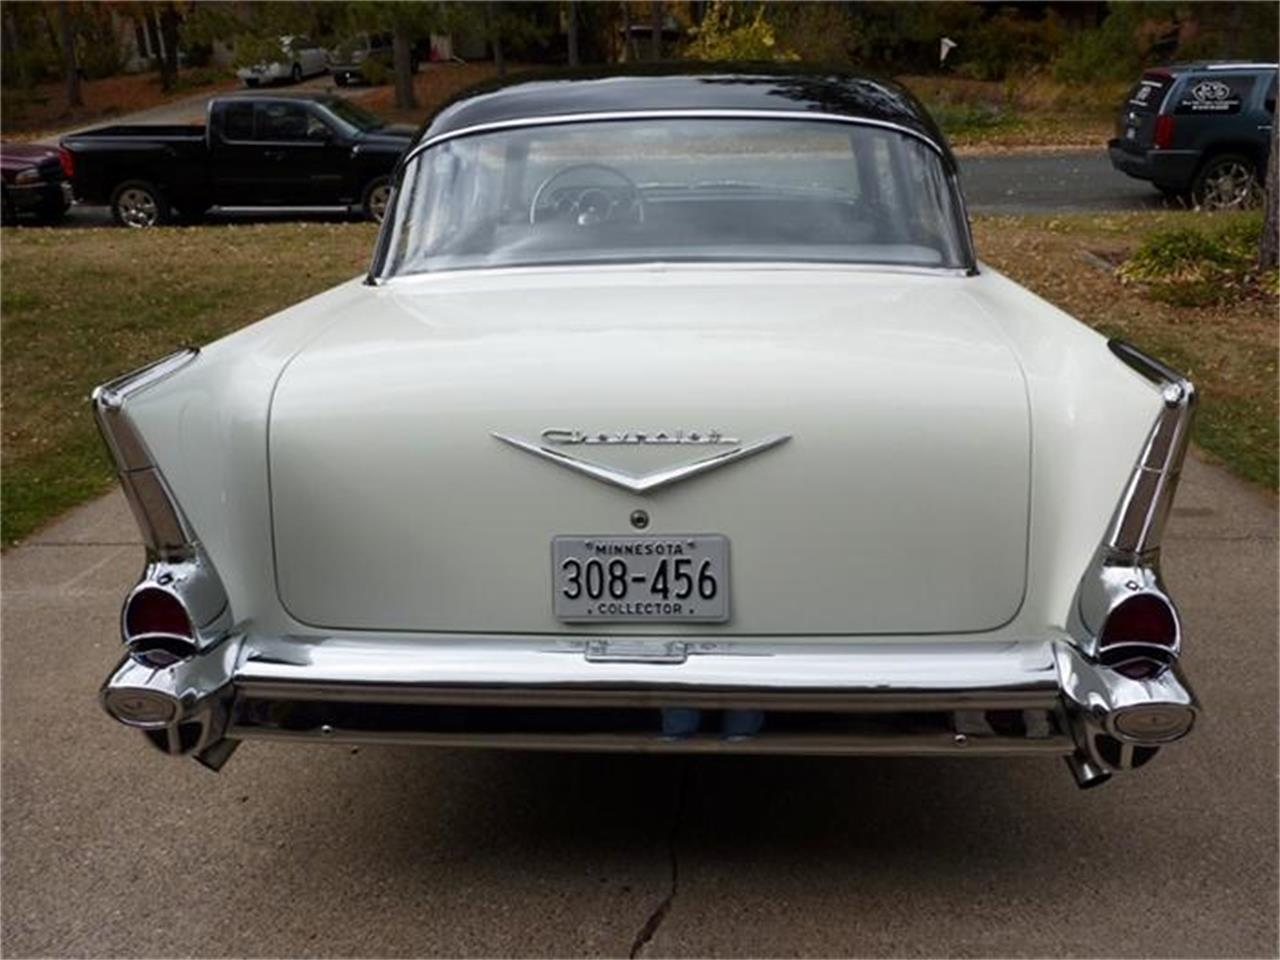 Large Picture of Classic 1957 Chevrolet Bel Air located in Minnesota - $55,000.00 - 9JRH